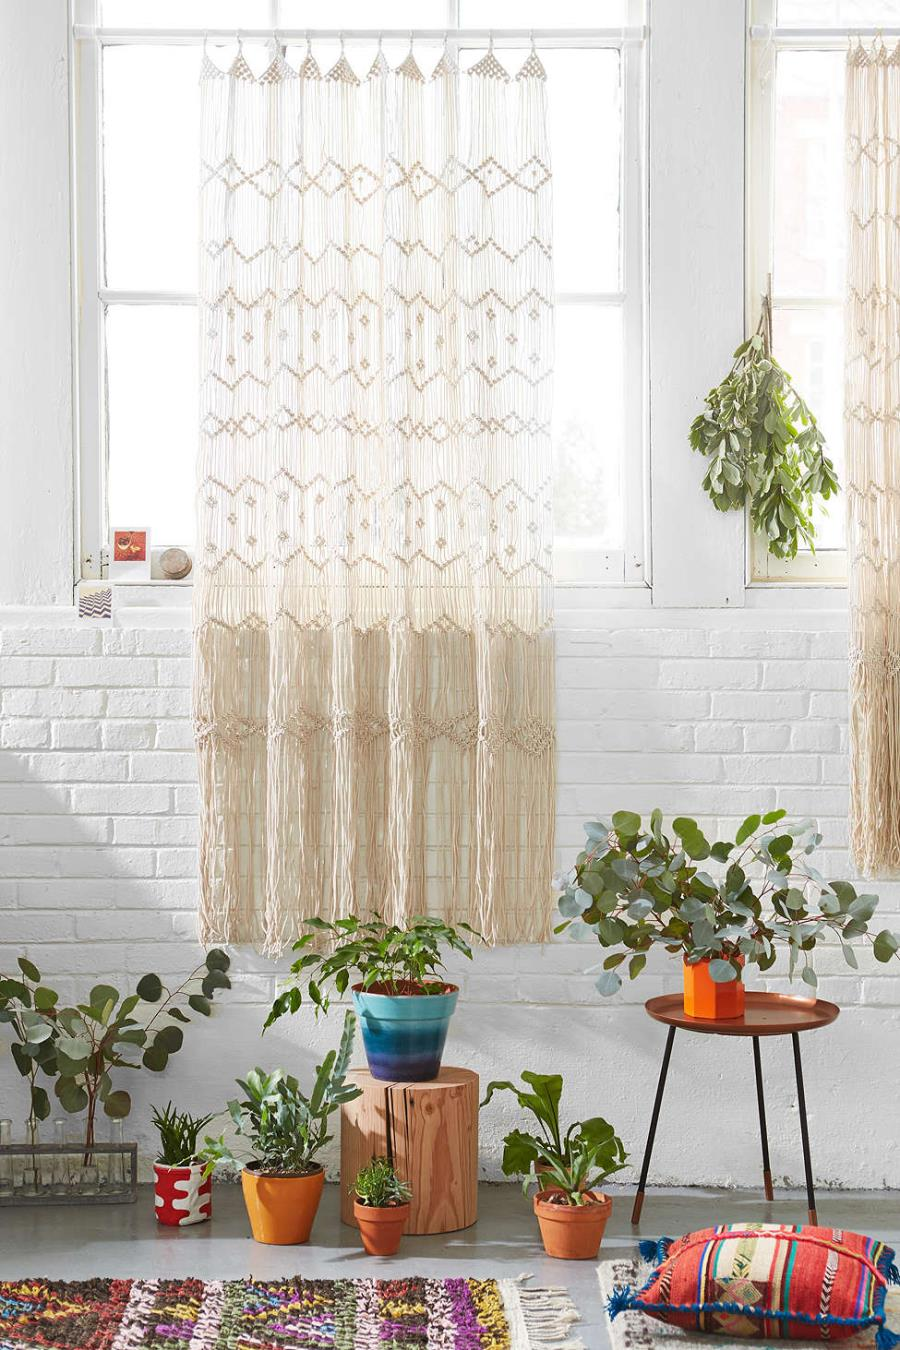 statement view interior gallery with hanging a wall white macrame create interiors chic in brick against